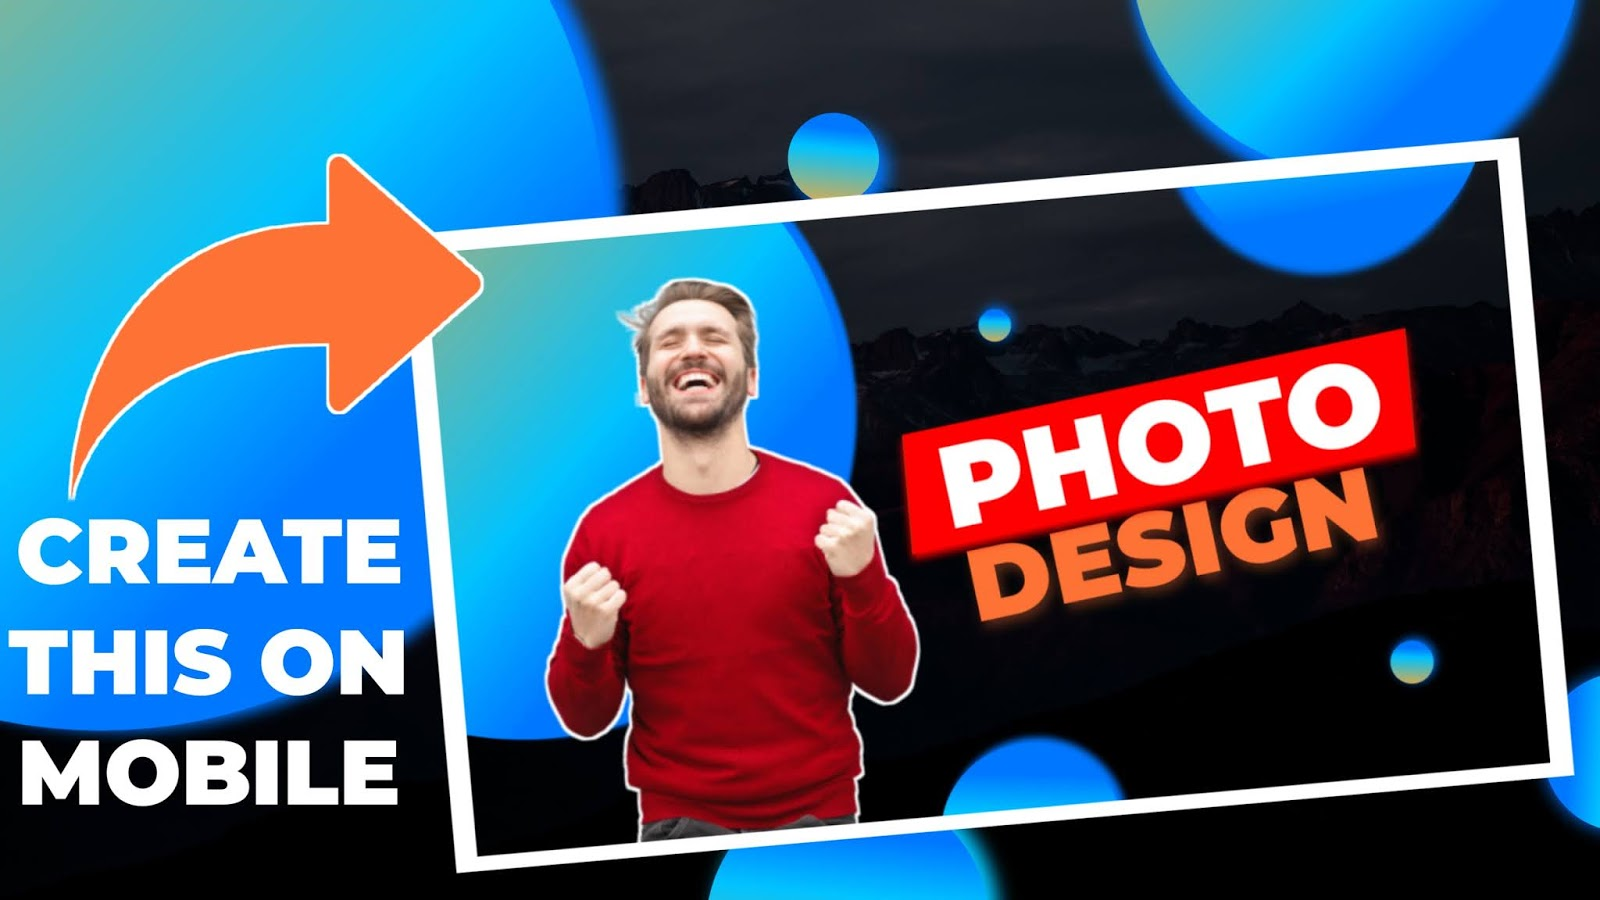 How To Easily Create Video Thumbnail Design With Mobile Phone